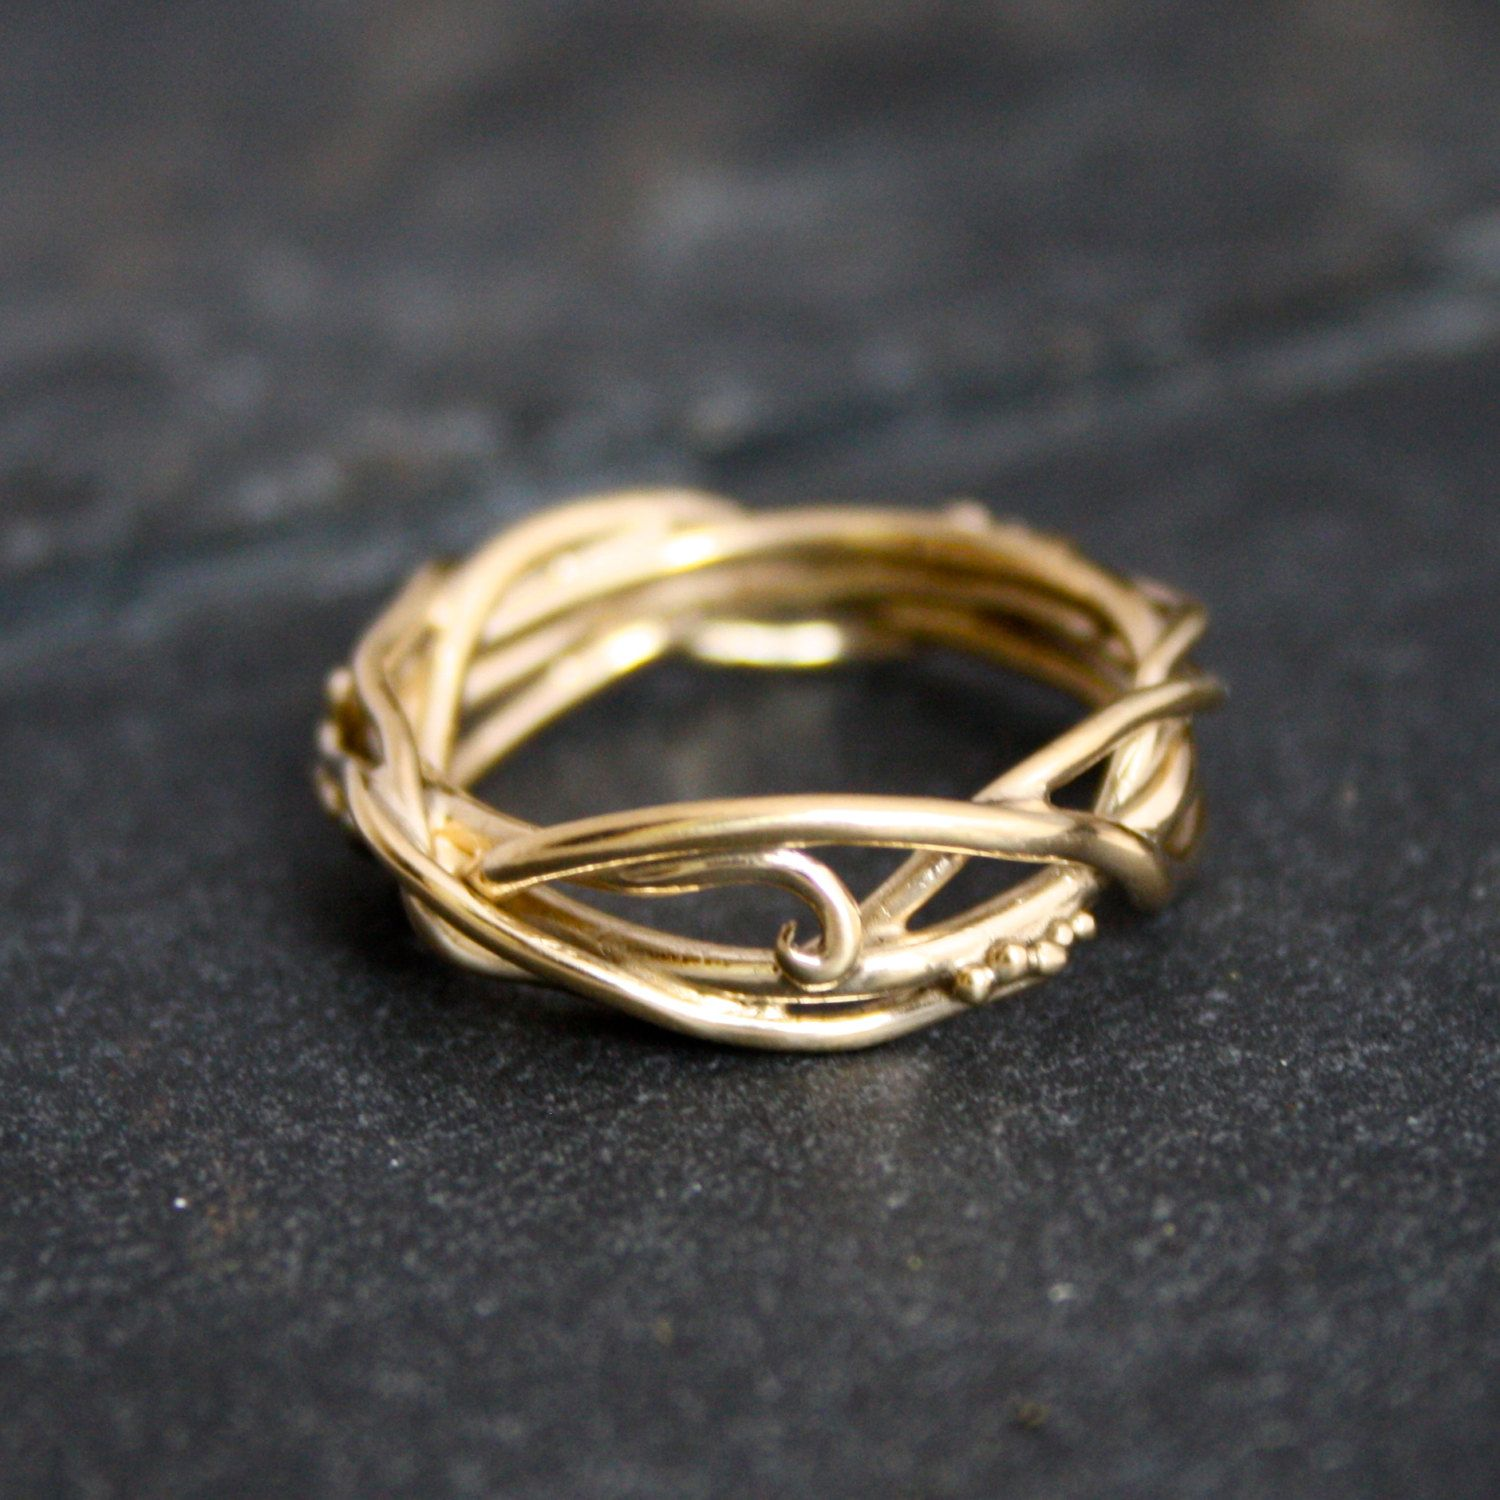 14Kt Yellow Gold Elvin Flow Organic Whimsical Engagement Ring